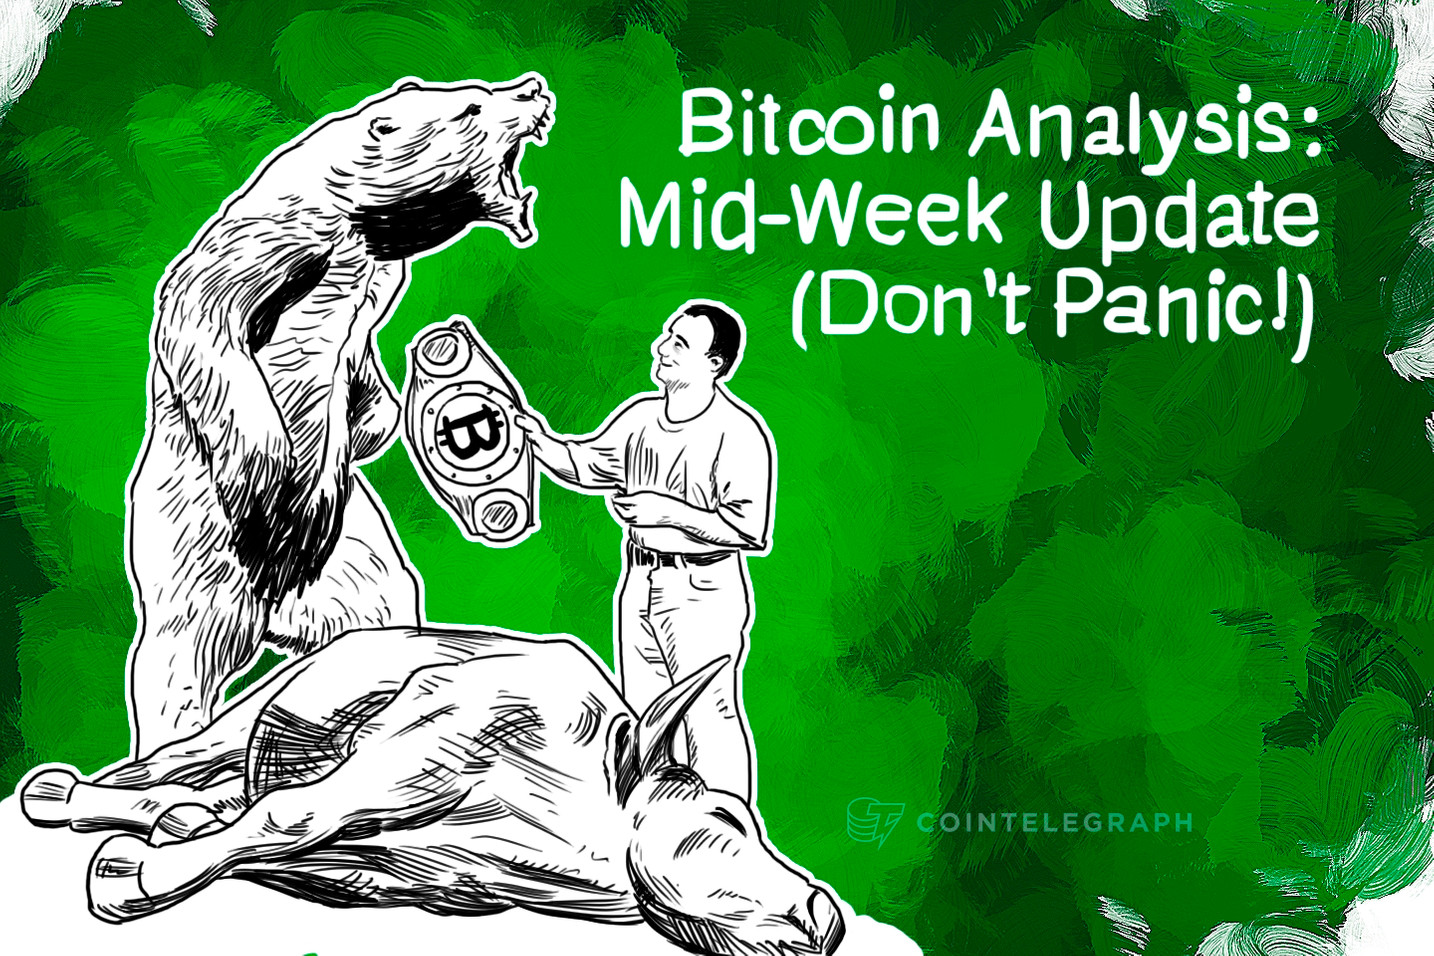 Bitcoin Analysis: Mid-Week Update (Don't Panic!)